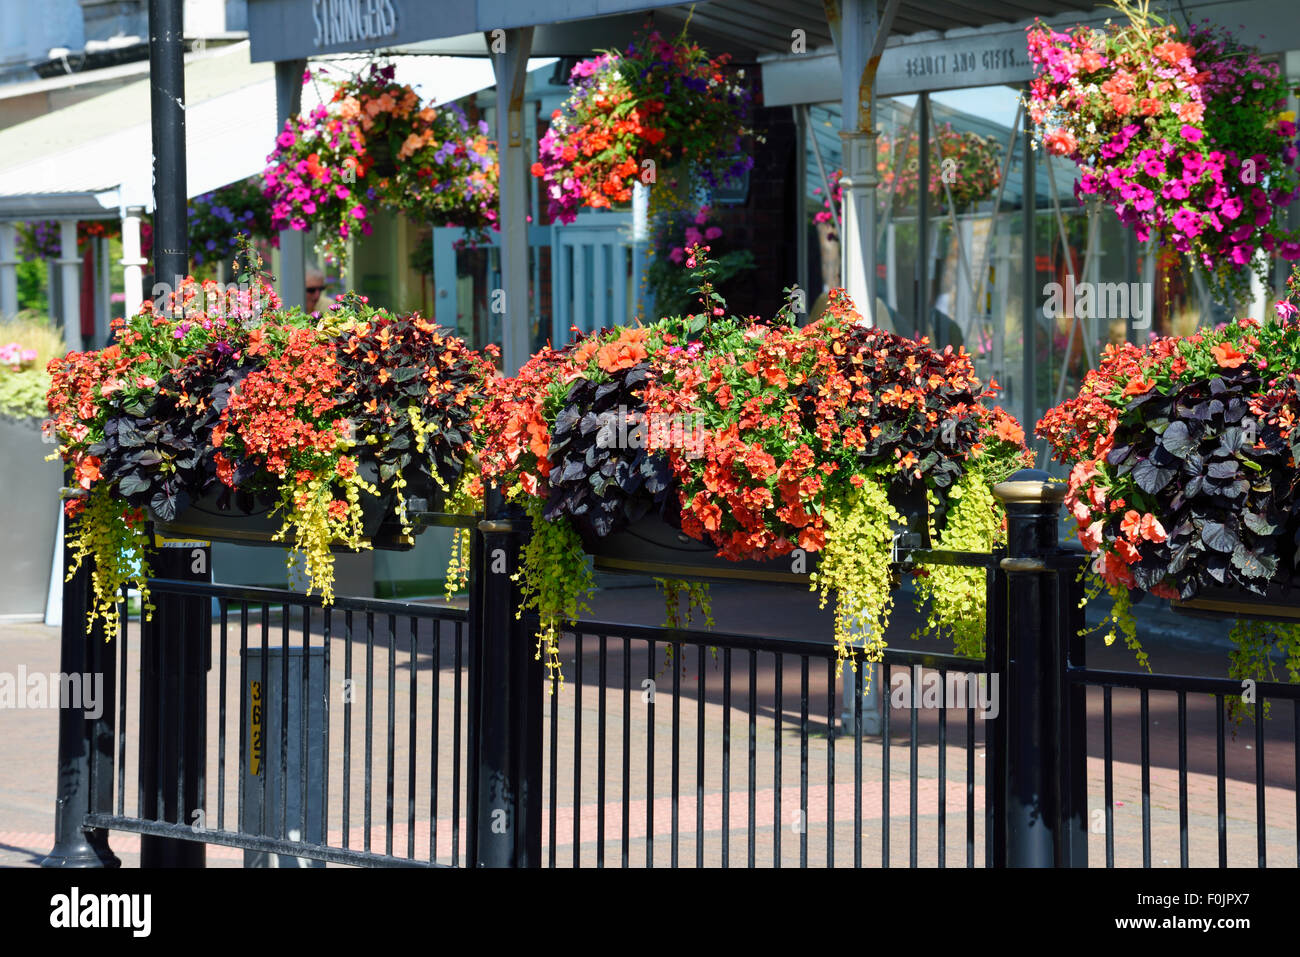 Row of colourful hanging baskets and window boxes outside a shop in Lytham, Lancashire - Stock Image